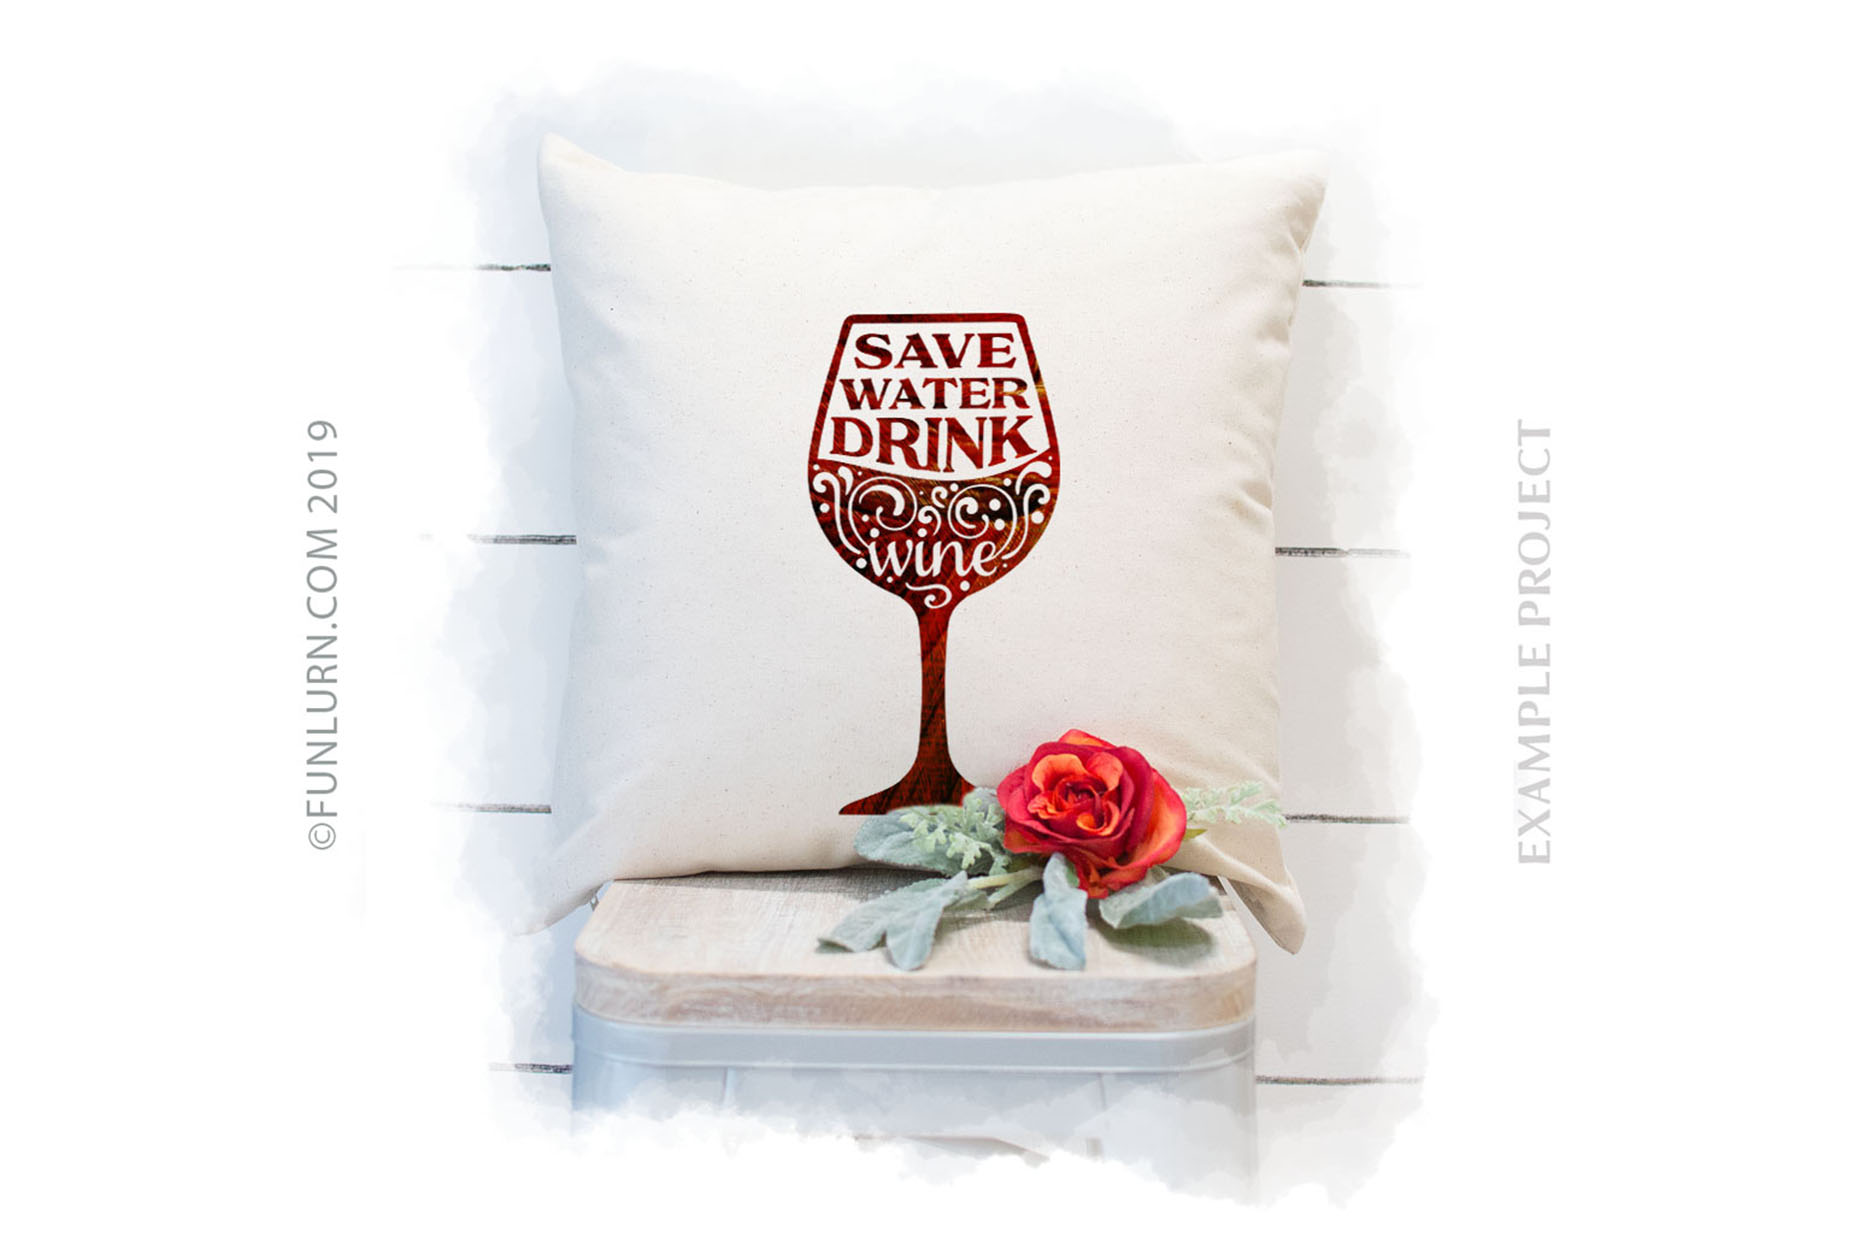 Save Water Drink Wine SVG Cut File example image 3